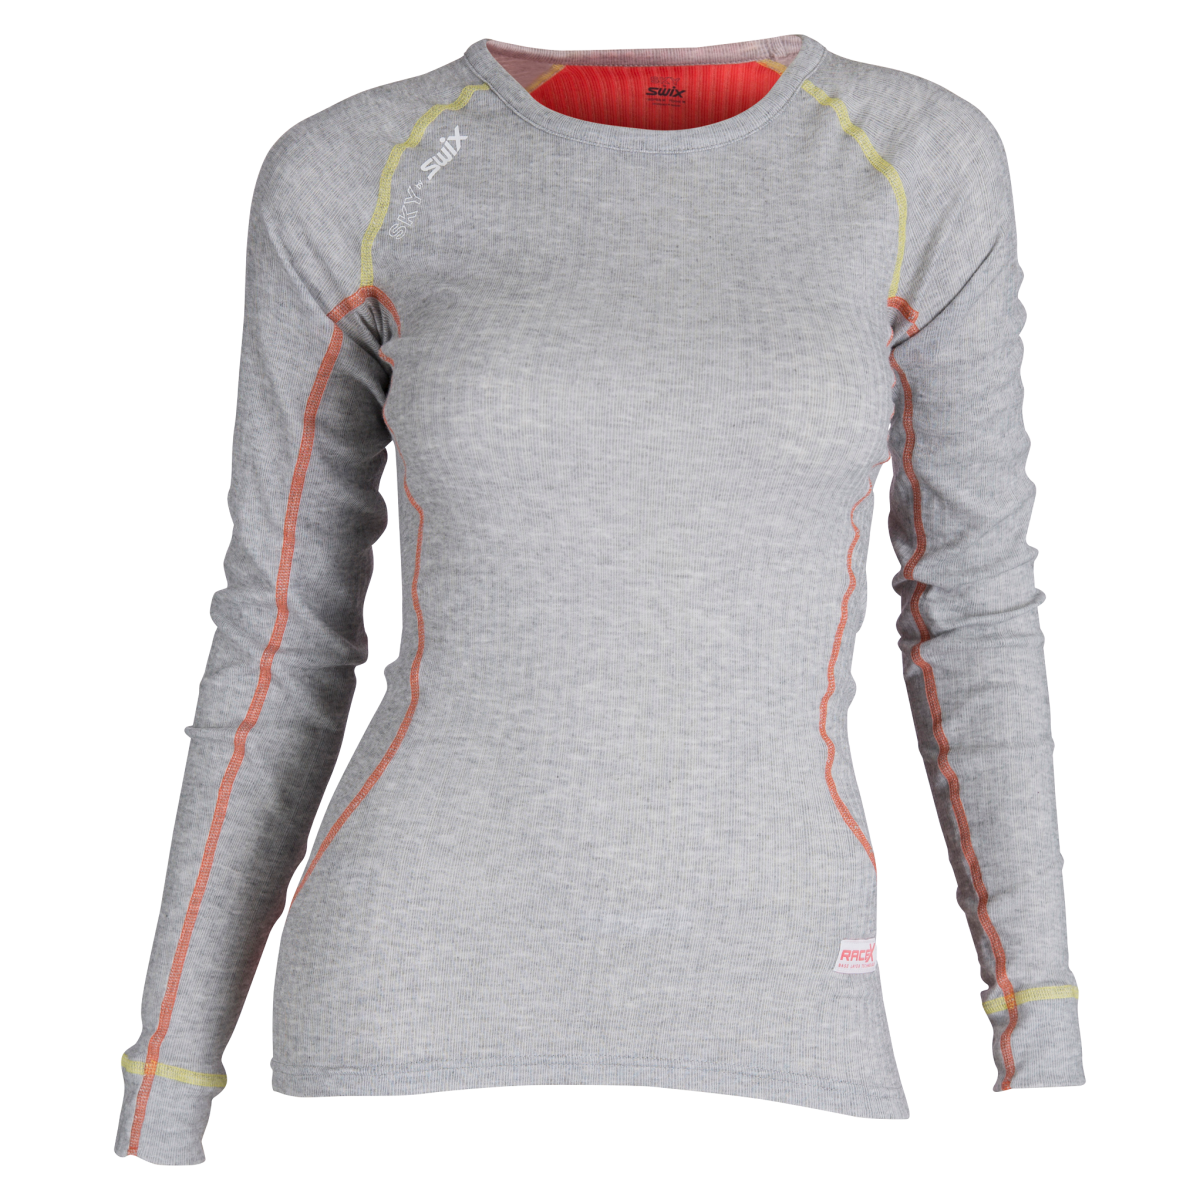 Swix - 2018 Women's Race X Bodywear Long Sleeve-Nordic Clothing-Kunstadt Sports